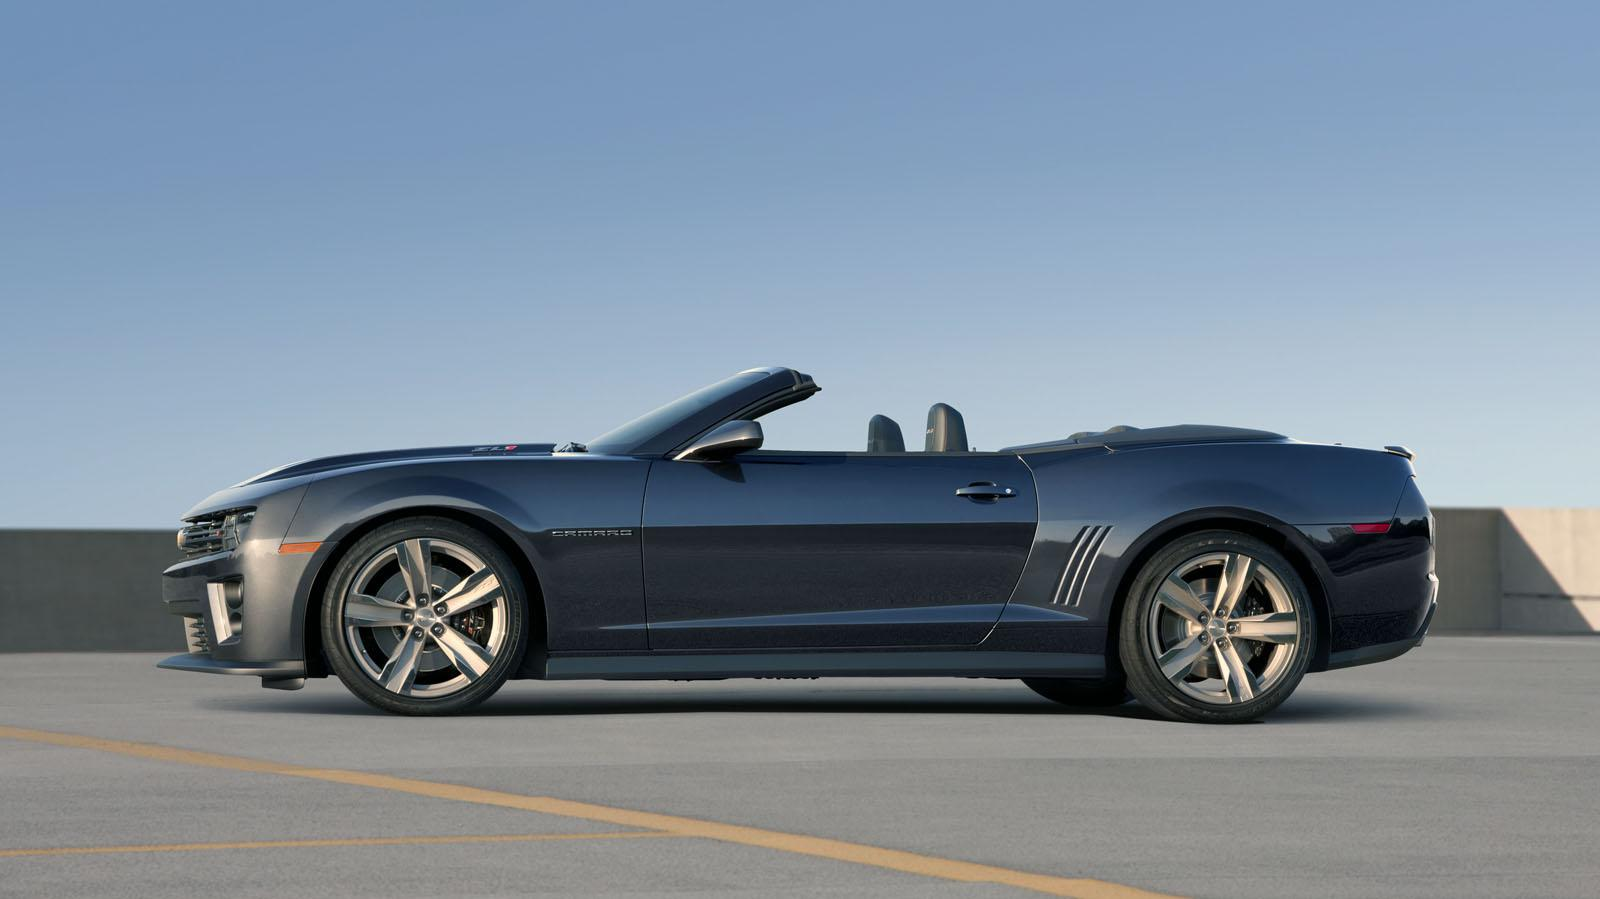 2013 Chevrolet Camaro ZL1 Convertible Picture #3 of 4